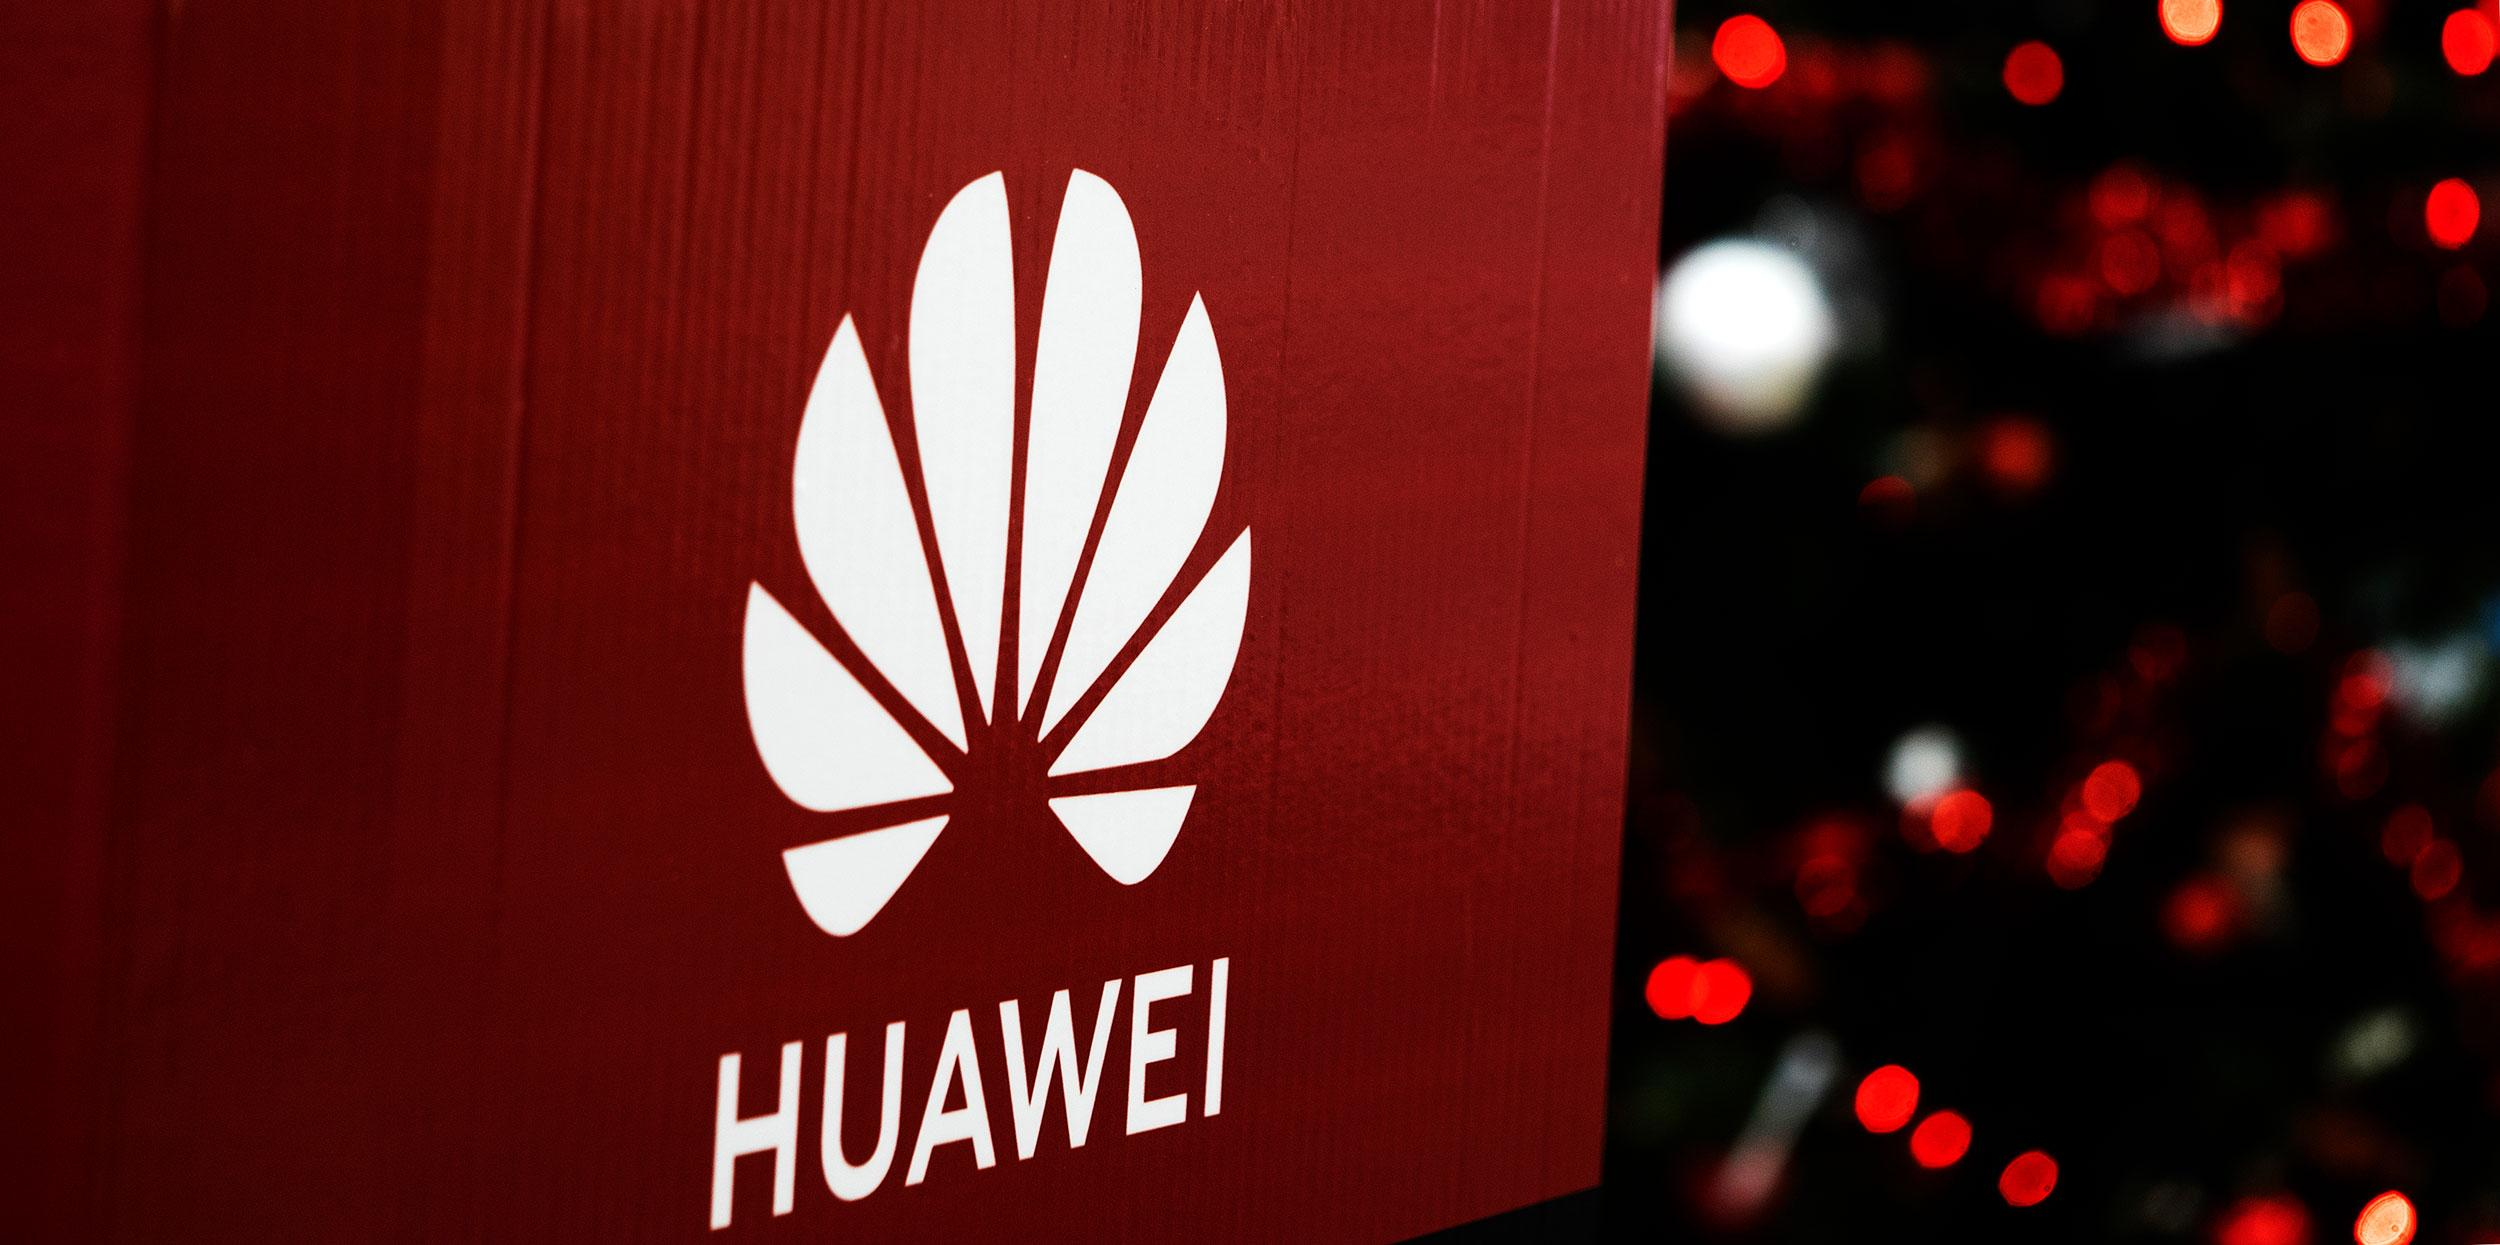 Several chip companies, including Qualcomm and Intel, have reportedly stopped supplying Huawei after blacklist